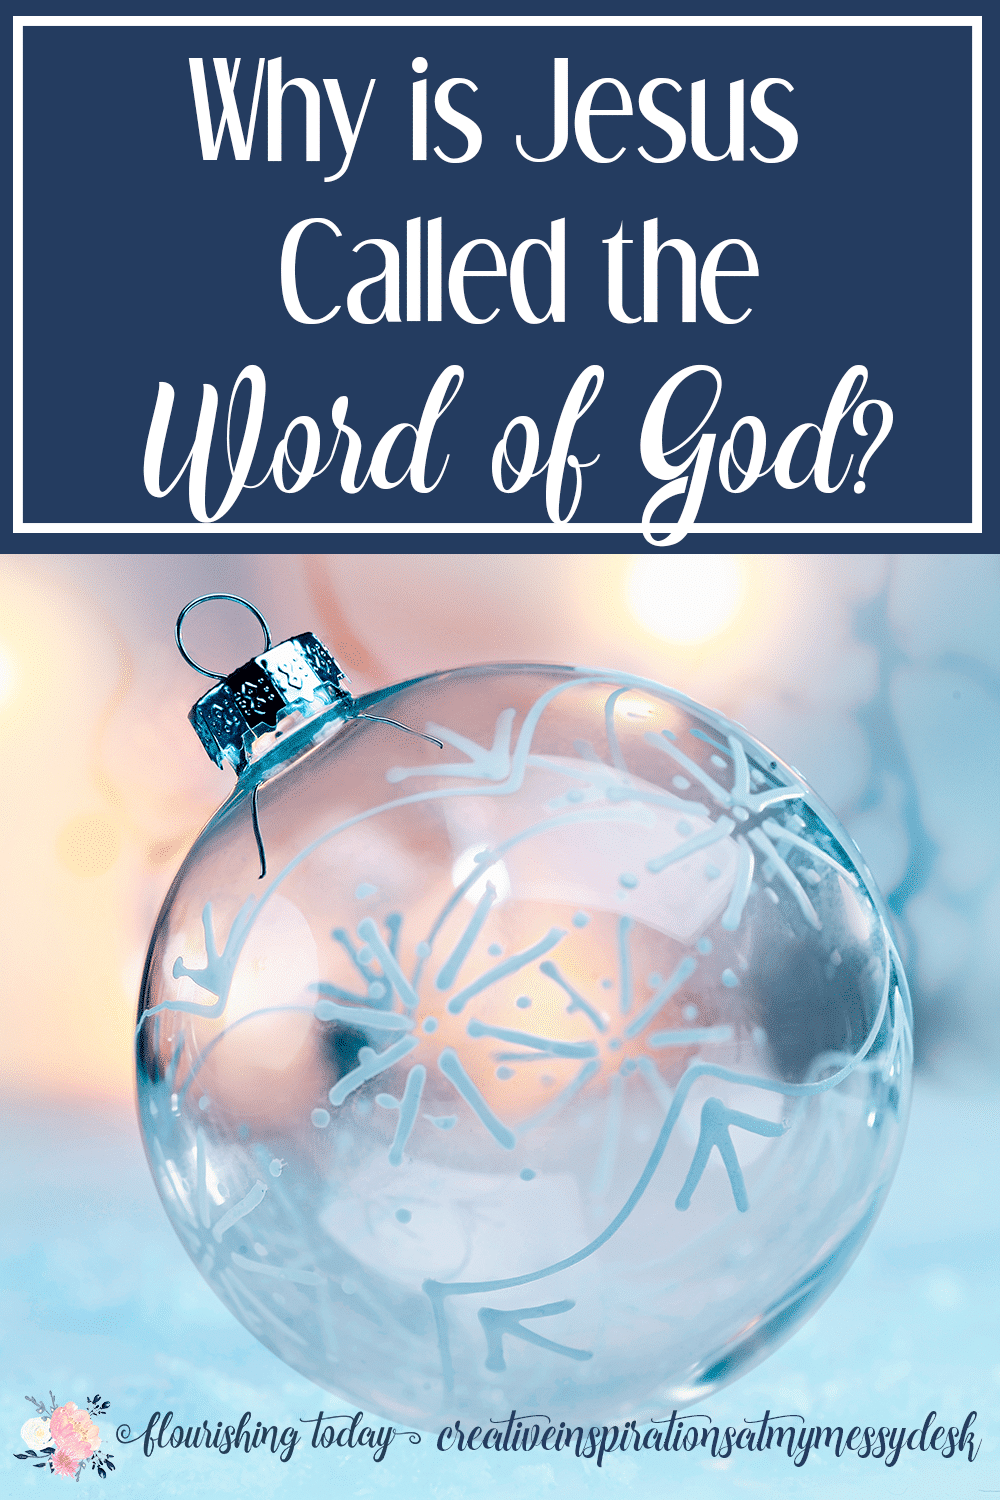 Have you ever wondered why Jesus is called the Word of God? Join us as we study the names of Jesus and find out about Jesus the Word made flesh.